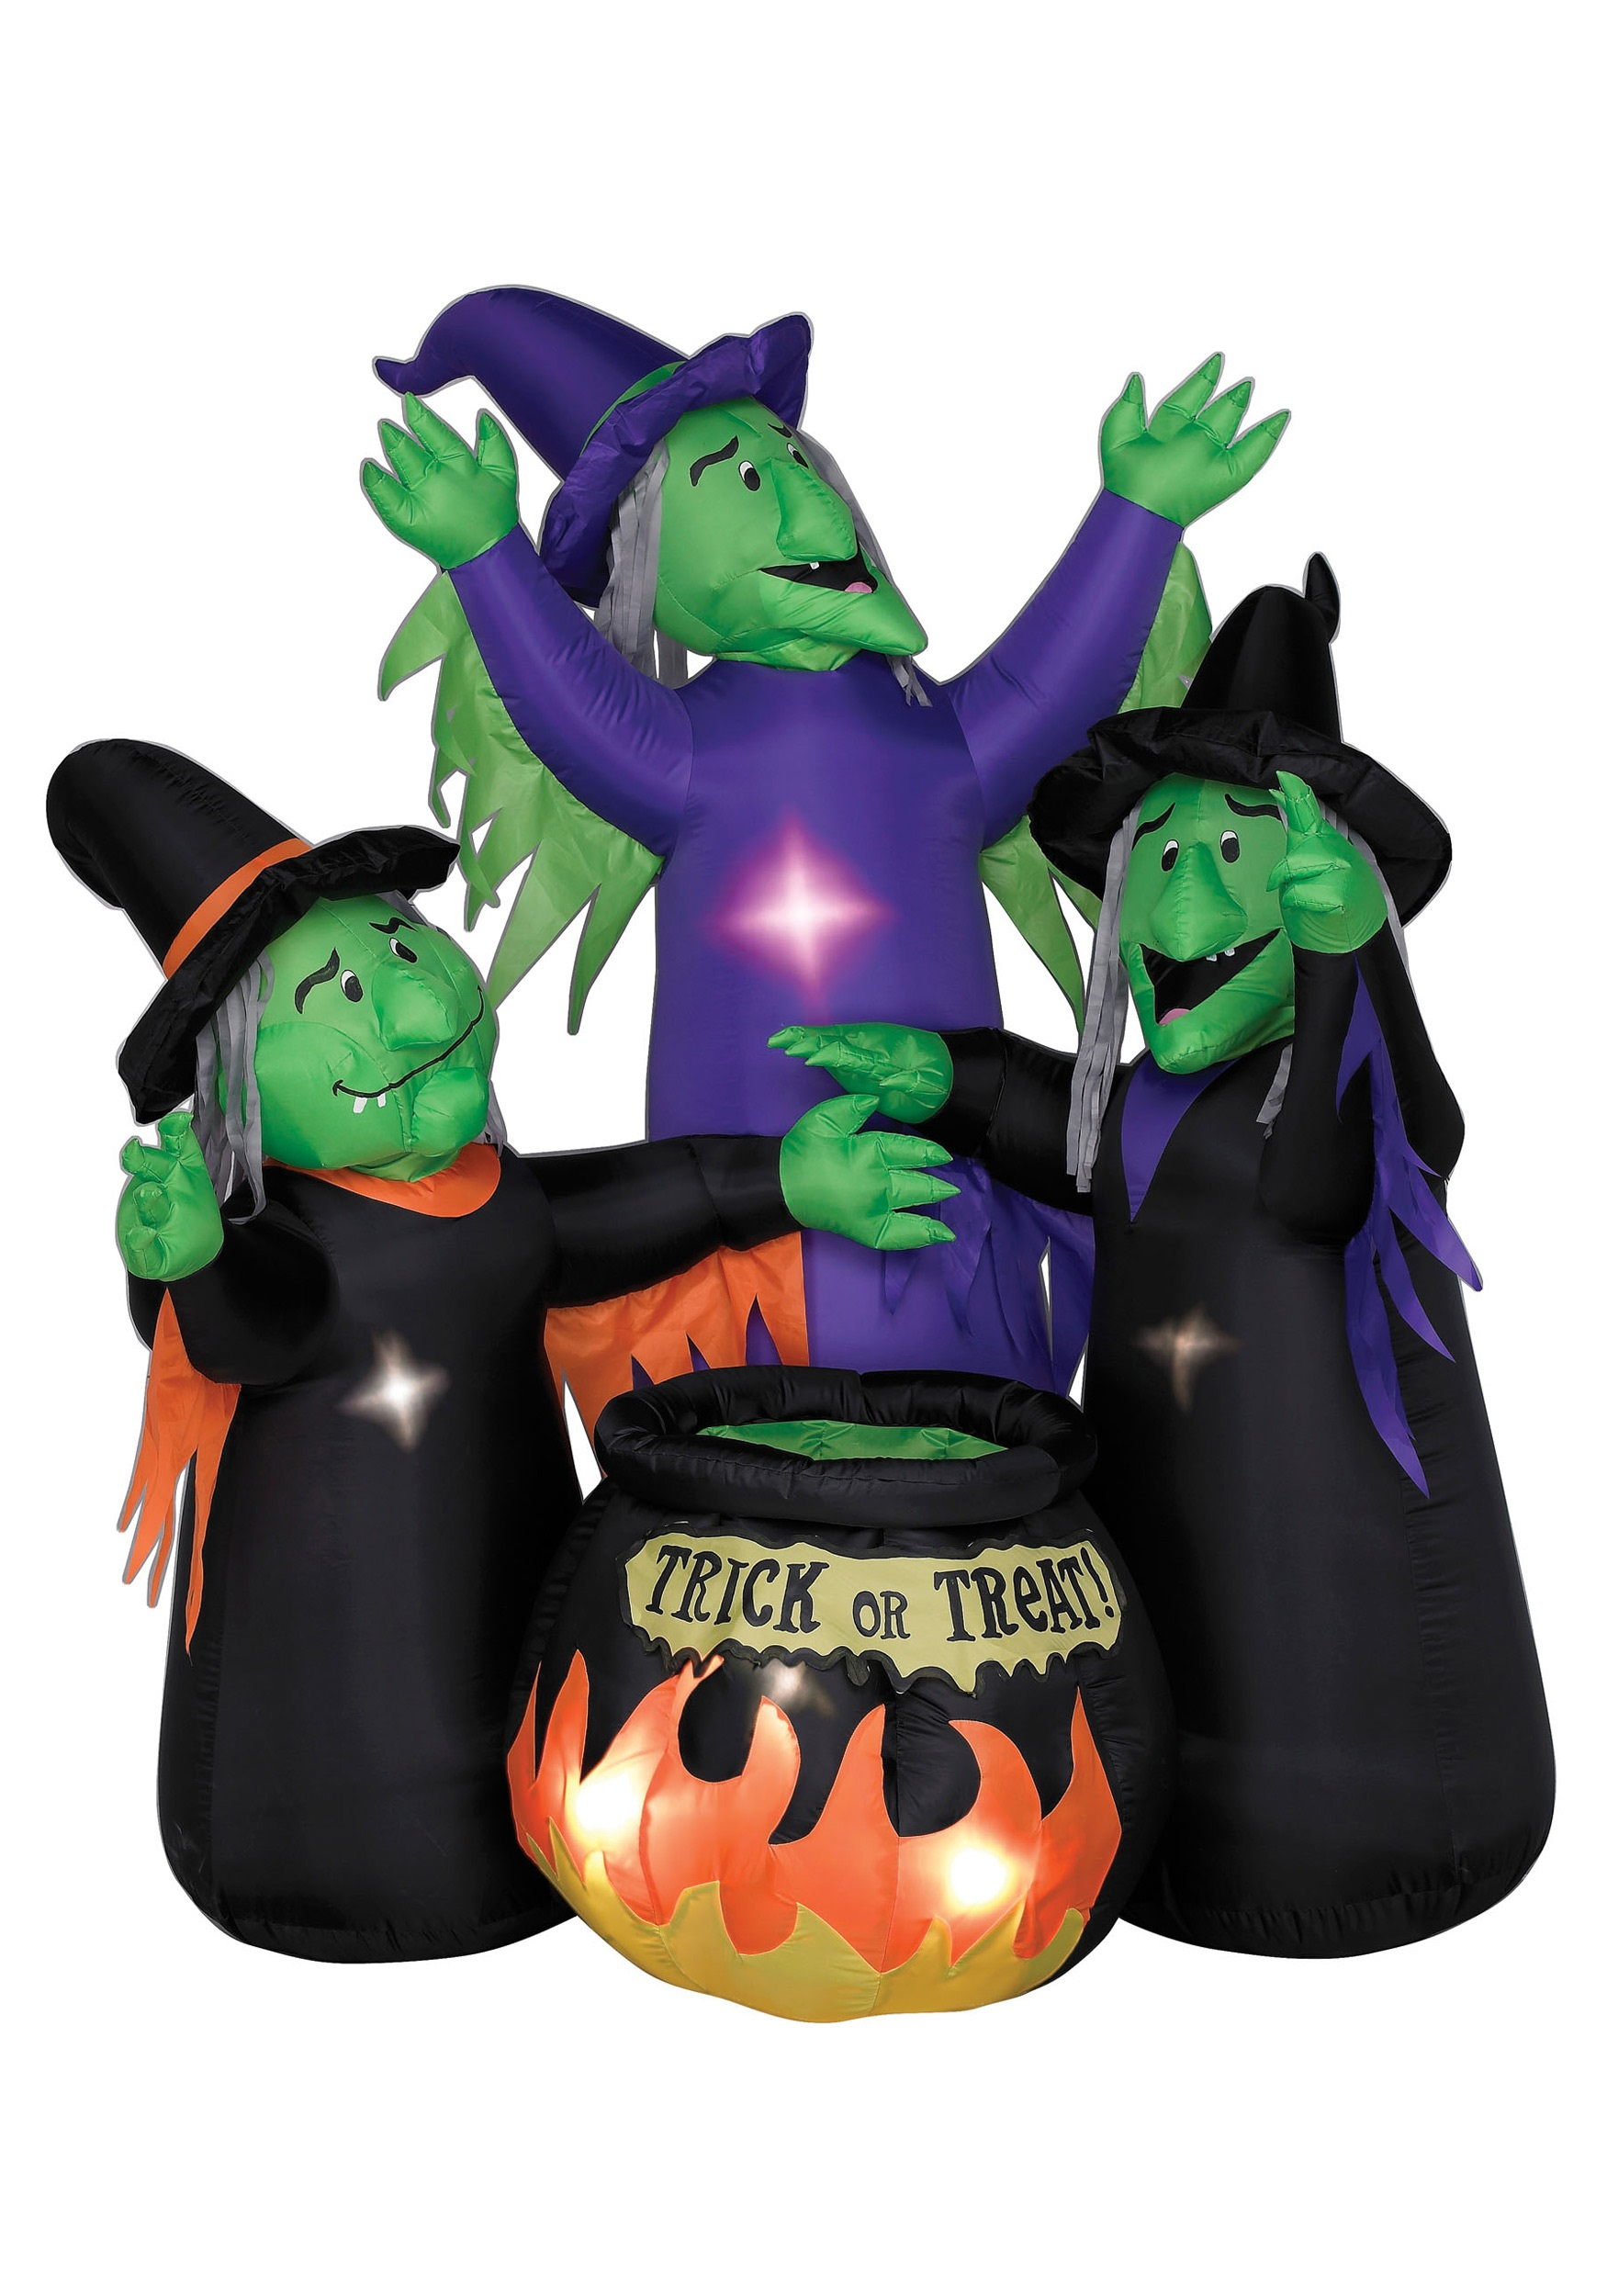 Animated Airblown Three Witches And Cauldron Halloween Costume Ideas 2019